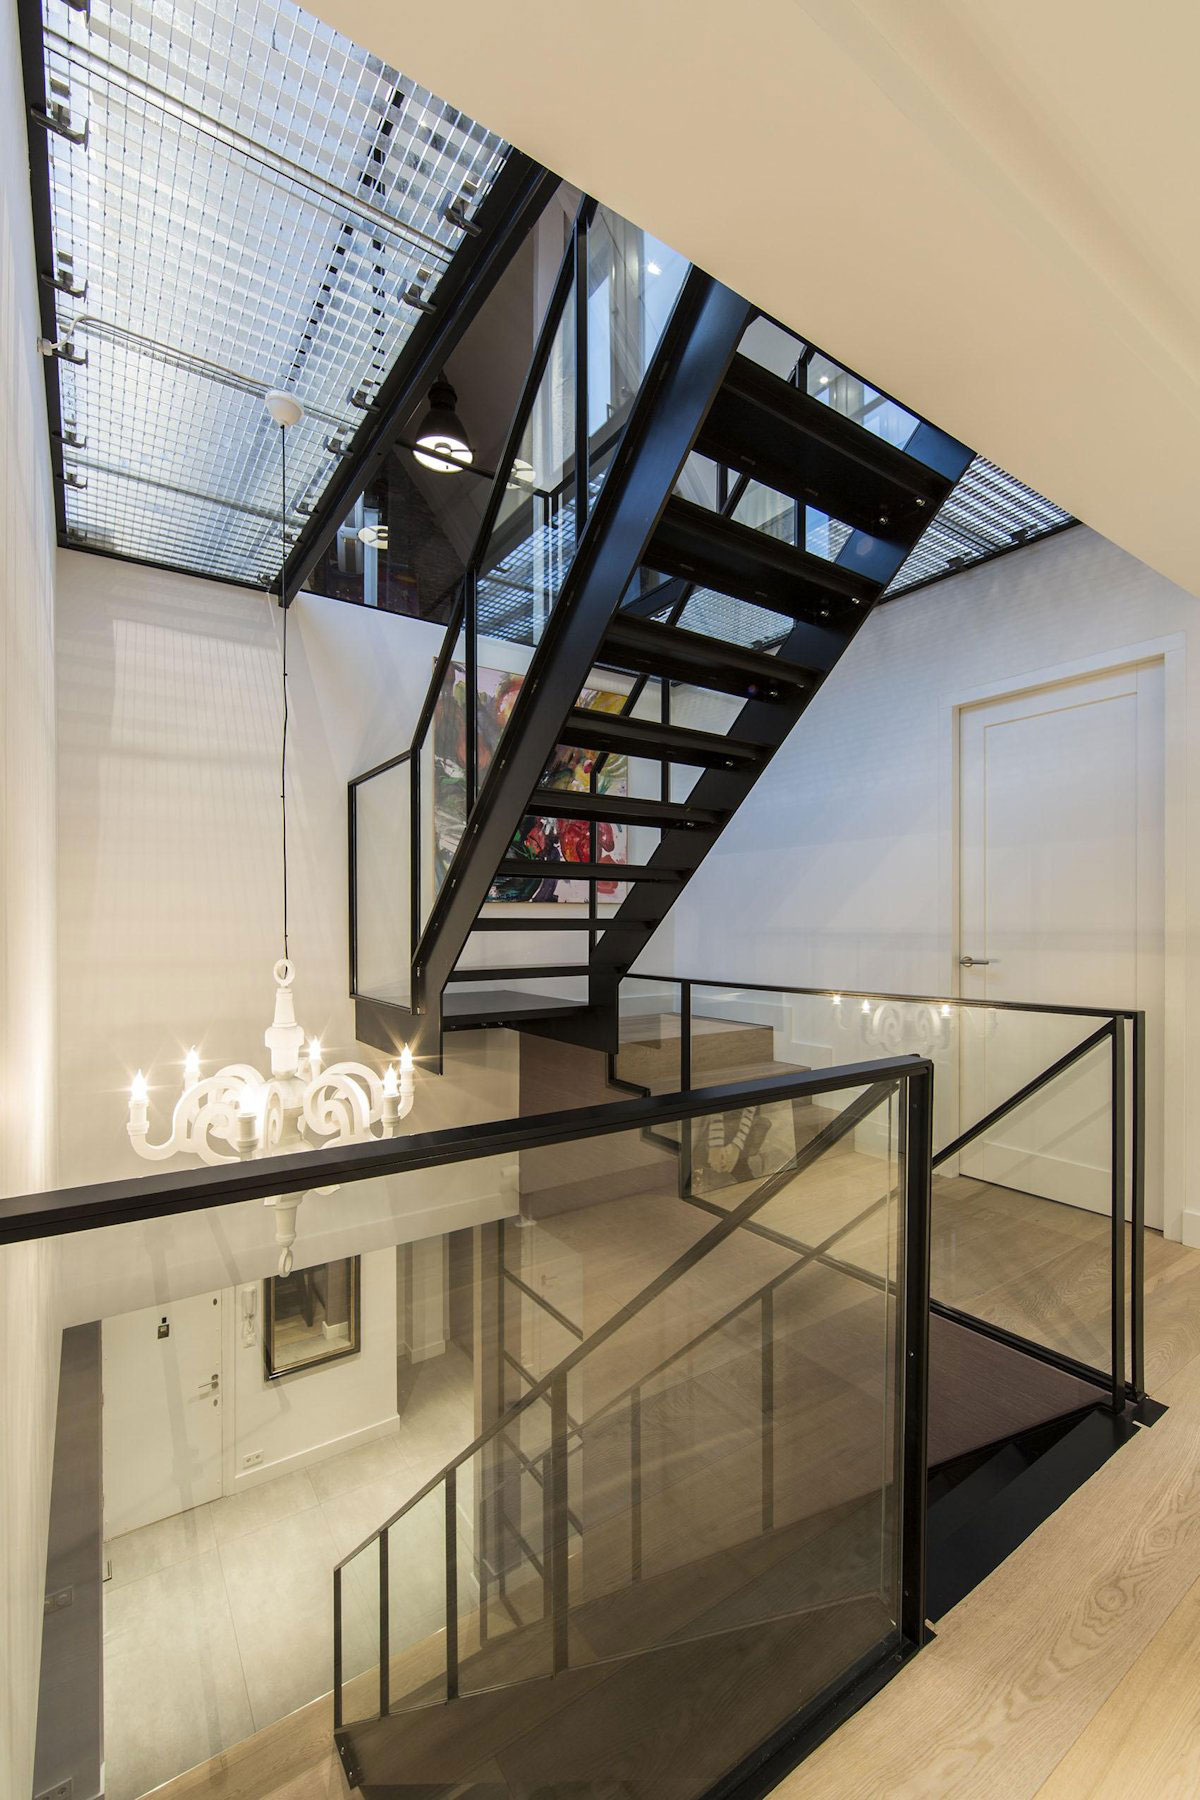 Chandelier, Stairs, Apartment in Amsterdam